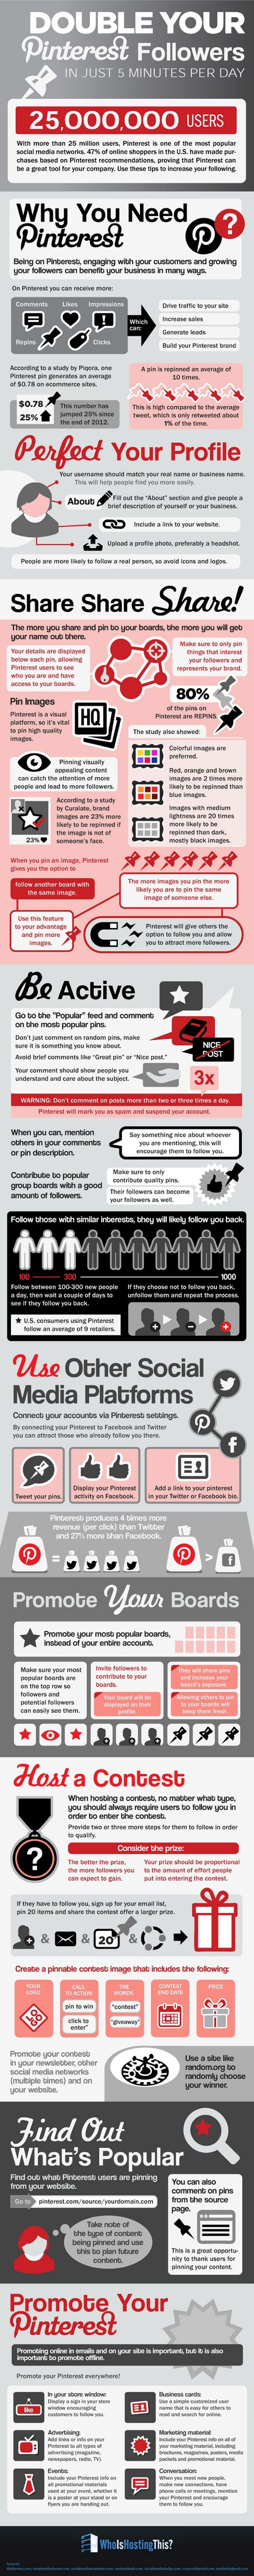 Pinterest for Business: How to Double Your Followers Infographic image